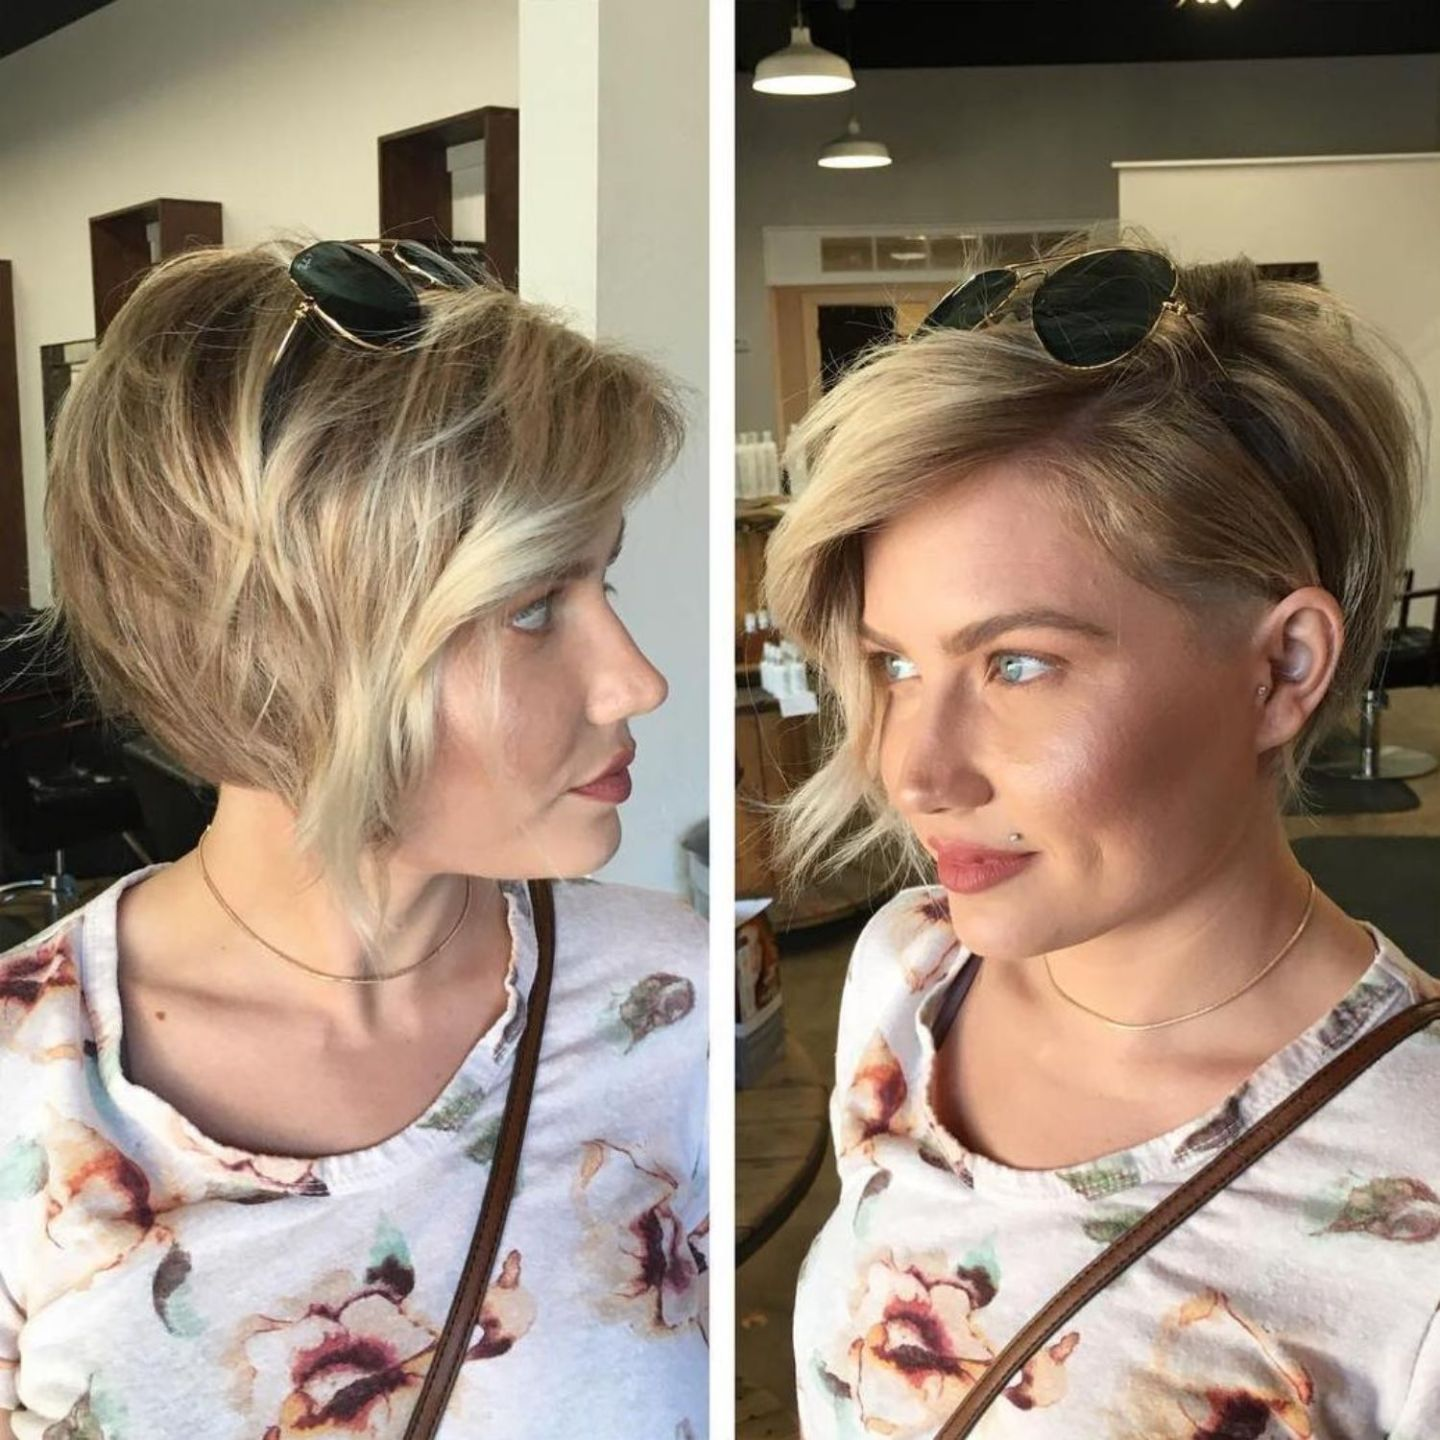 Asymmetrical Blonde Pixie For Thin Hair | Hairstyles for round faces, Thick hair styles, Short ...